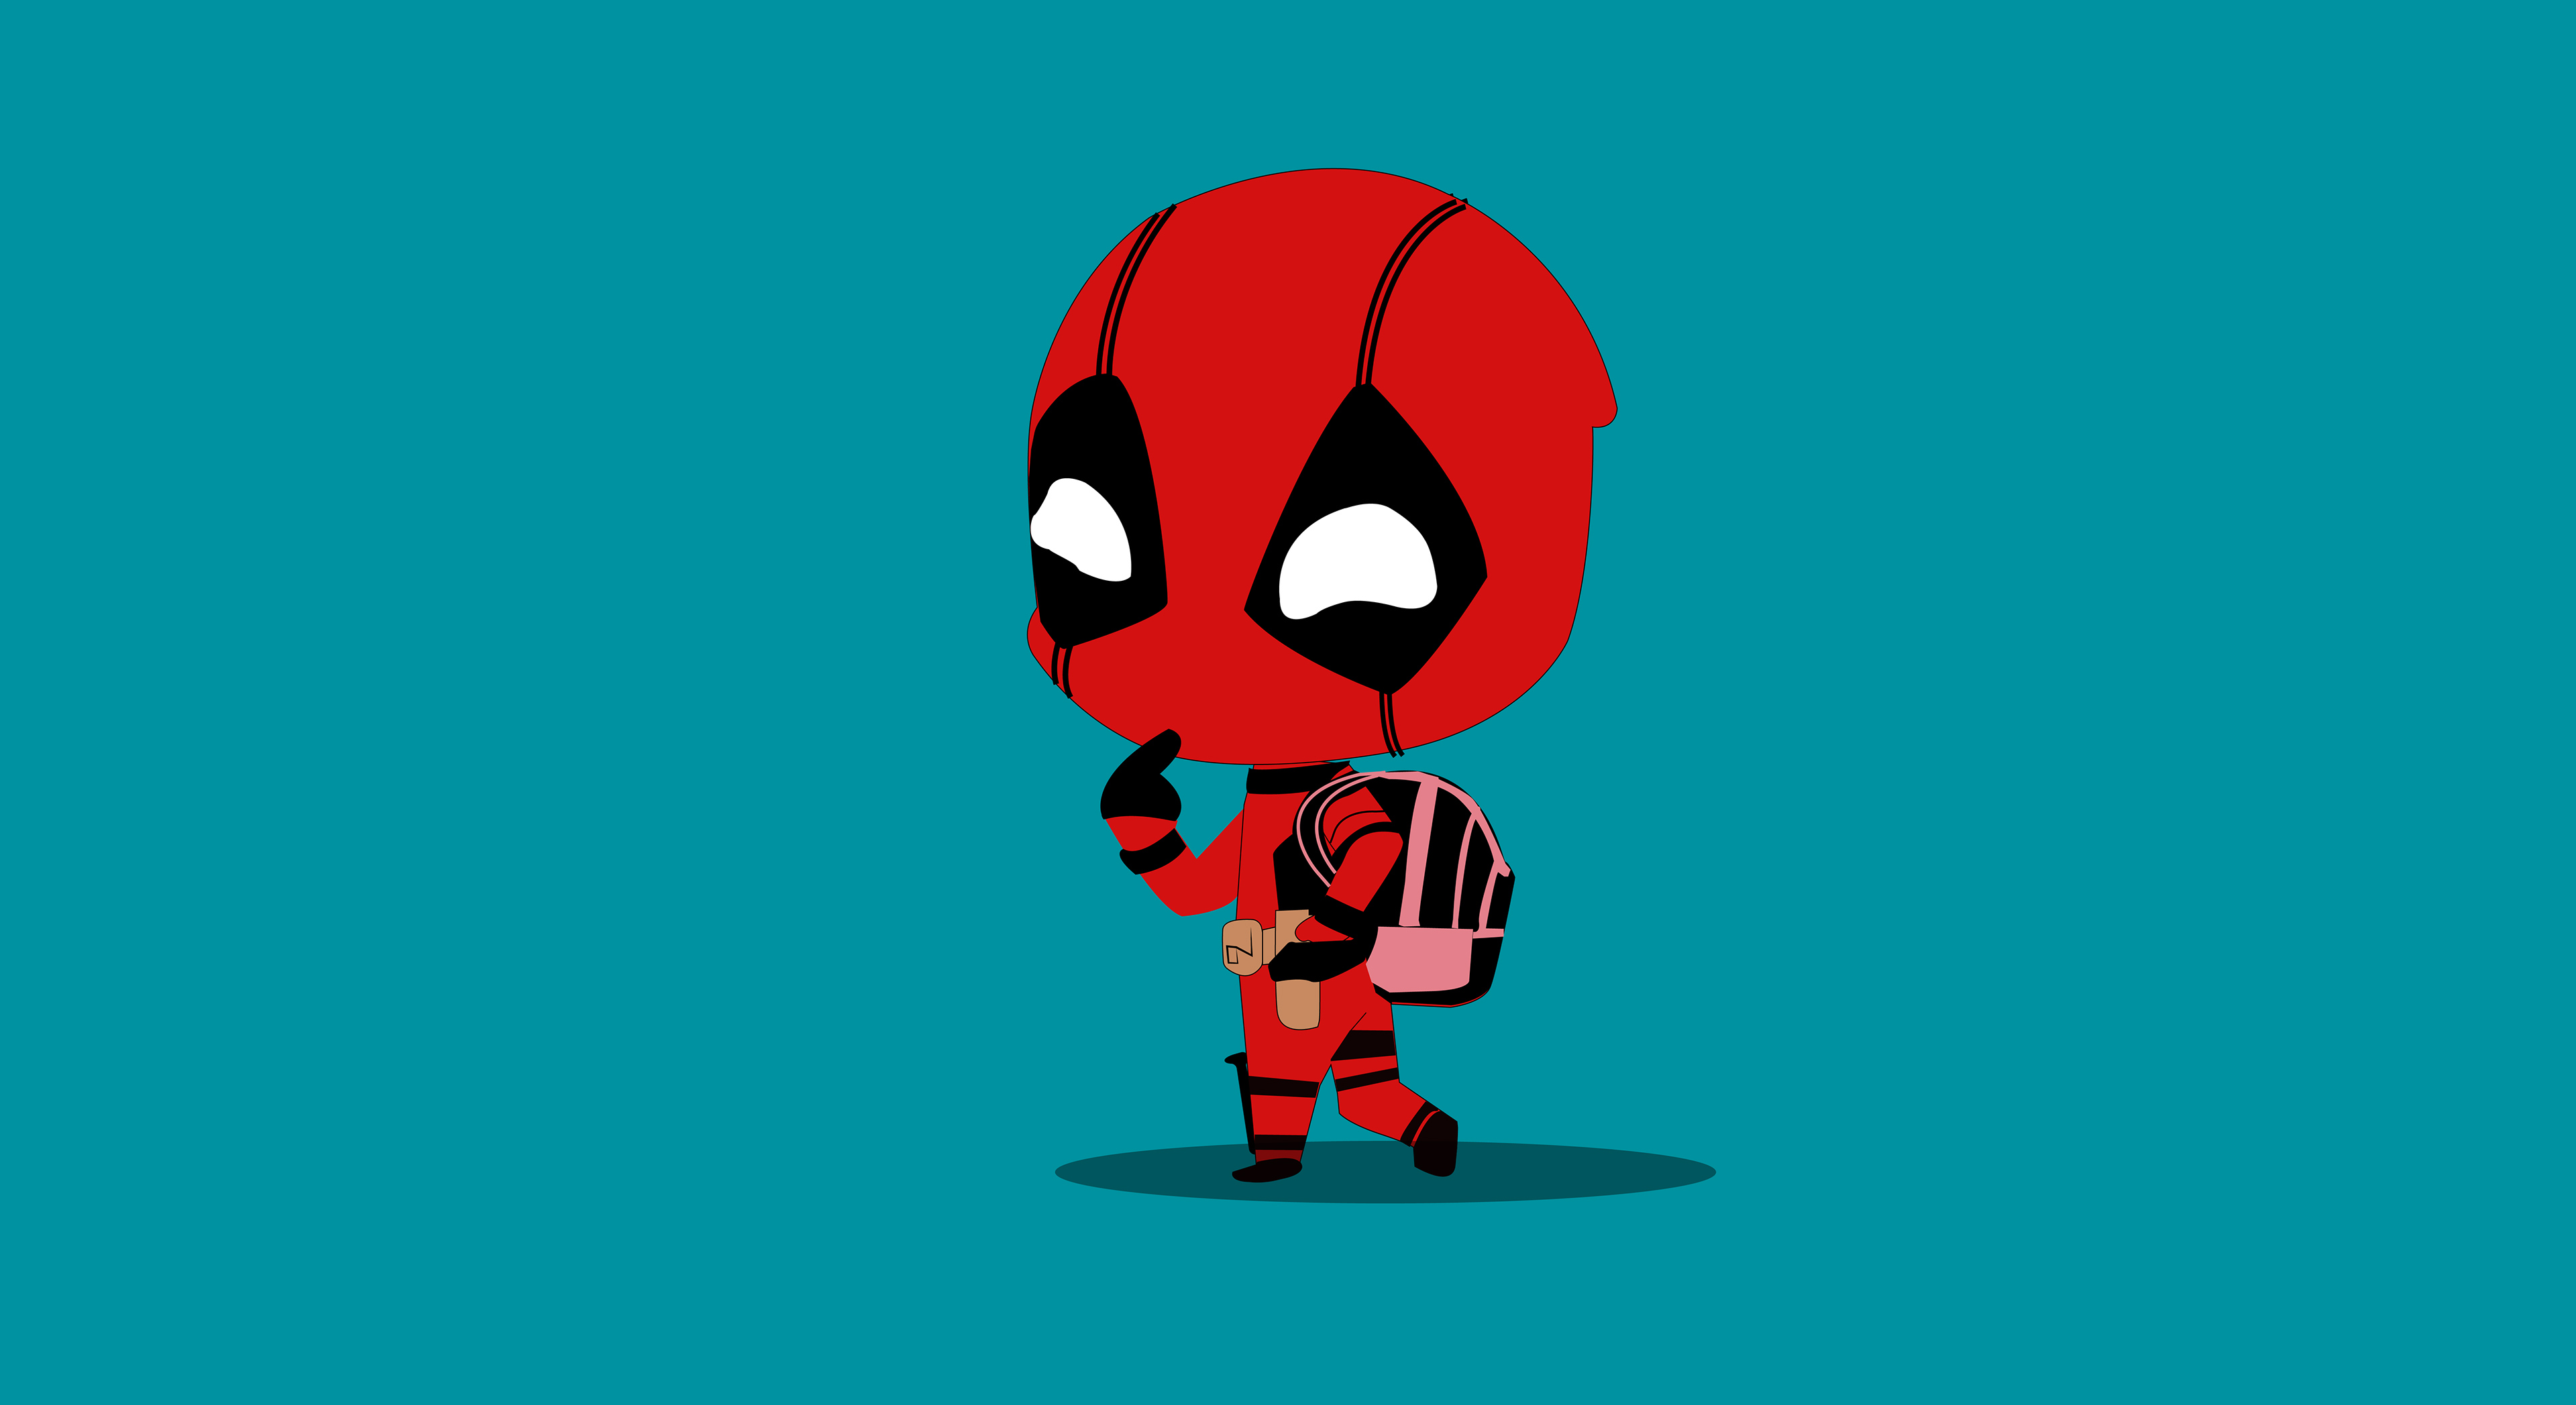 Deadpool Cartoon Wallpapers Posted By Ethan Johnson